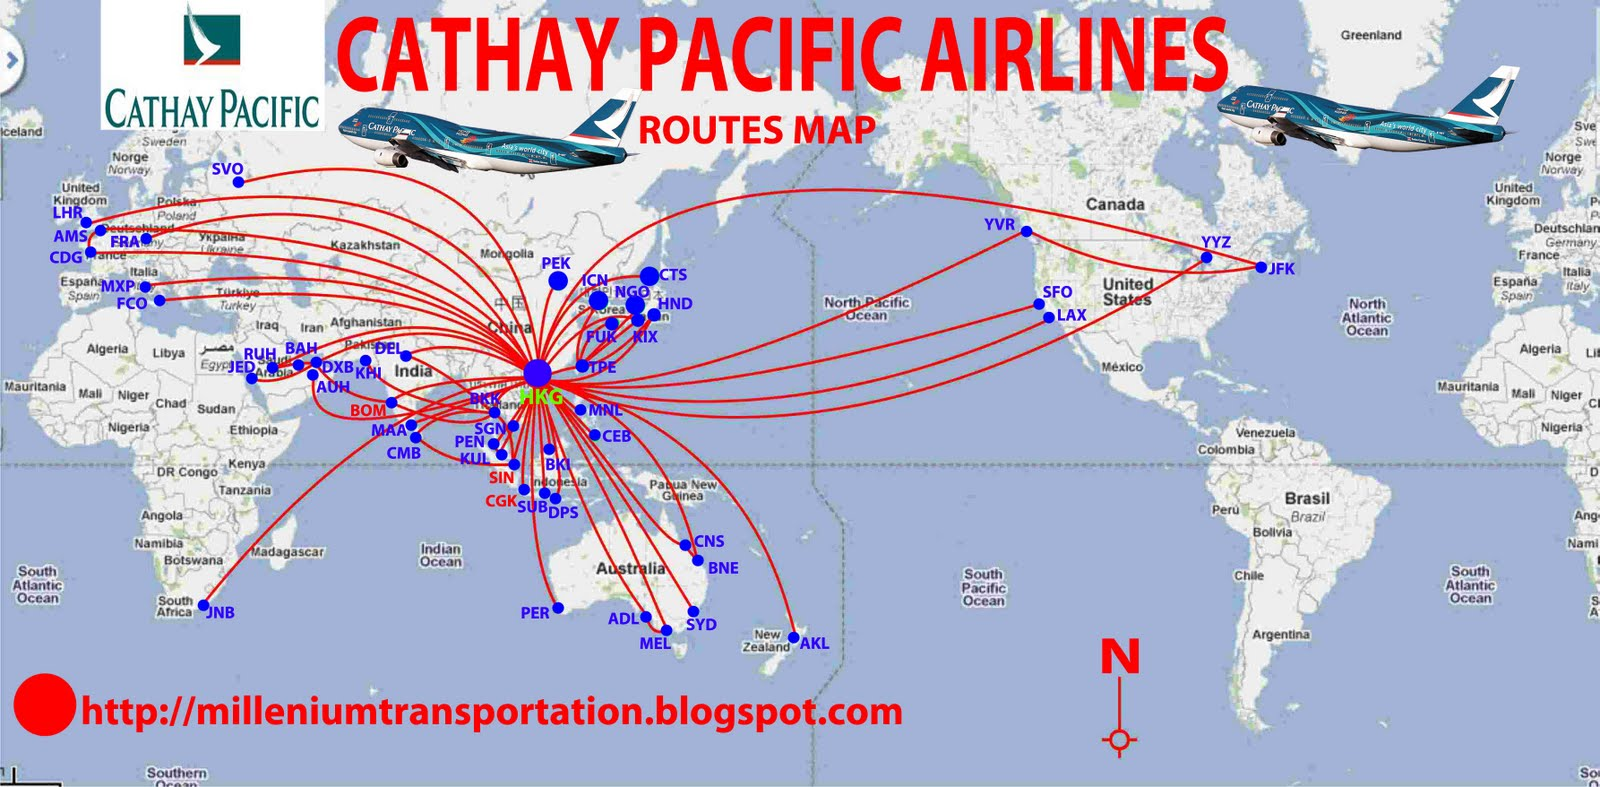 cathay pacific routes map. civil aviation cathay pasific airways routes map